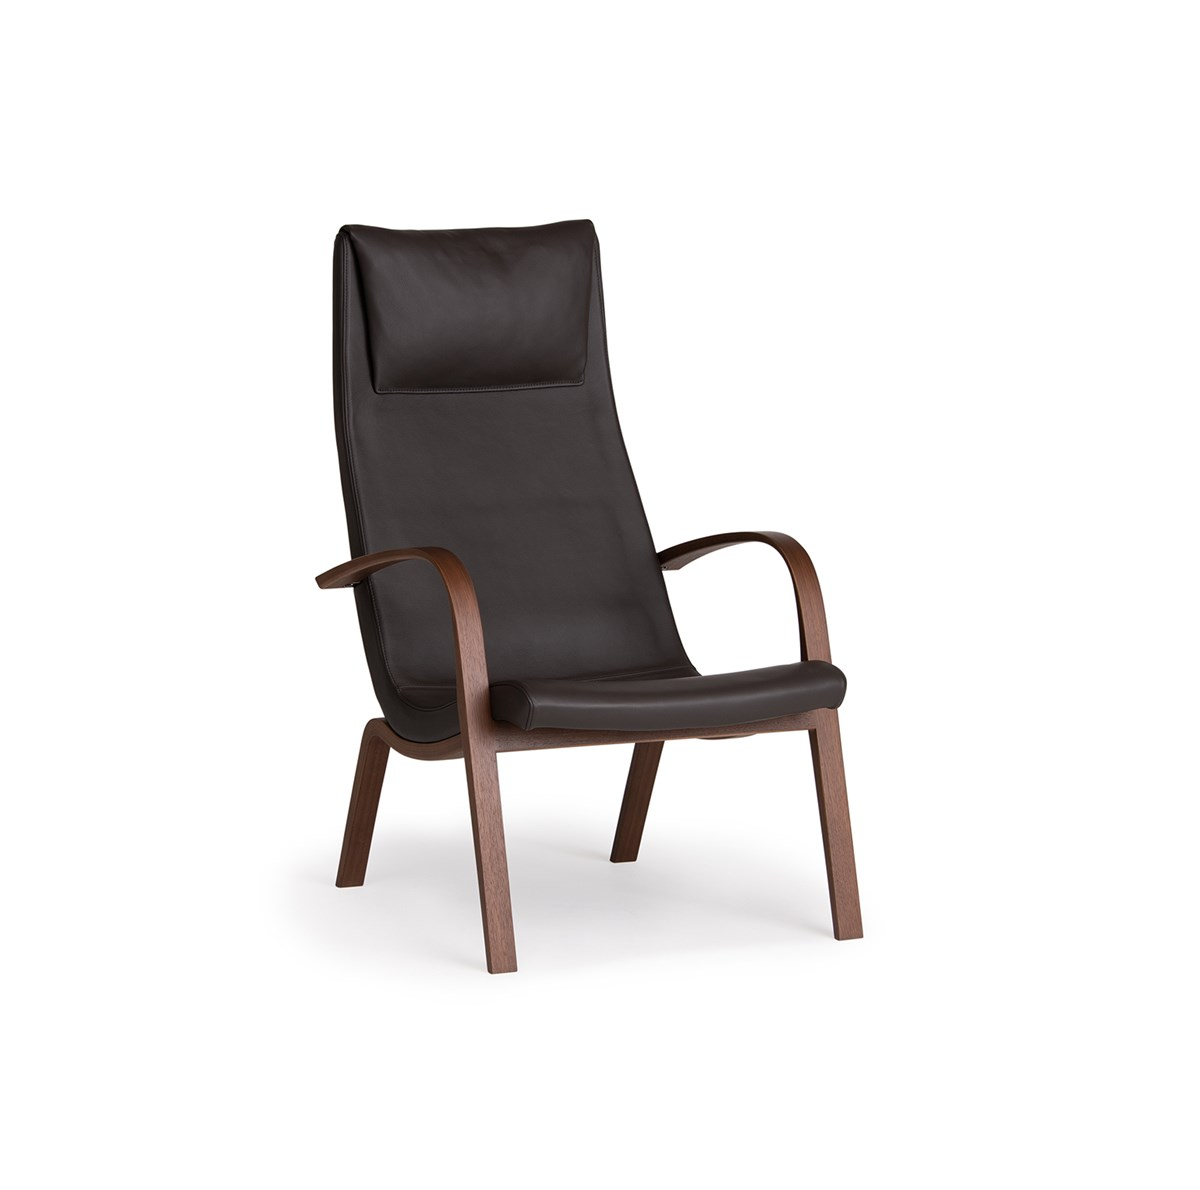 Conde-House-Sture-Eng-Linus-Armchair-Matisse-1